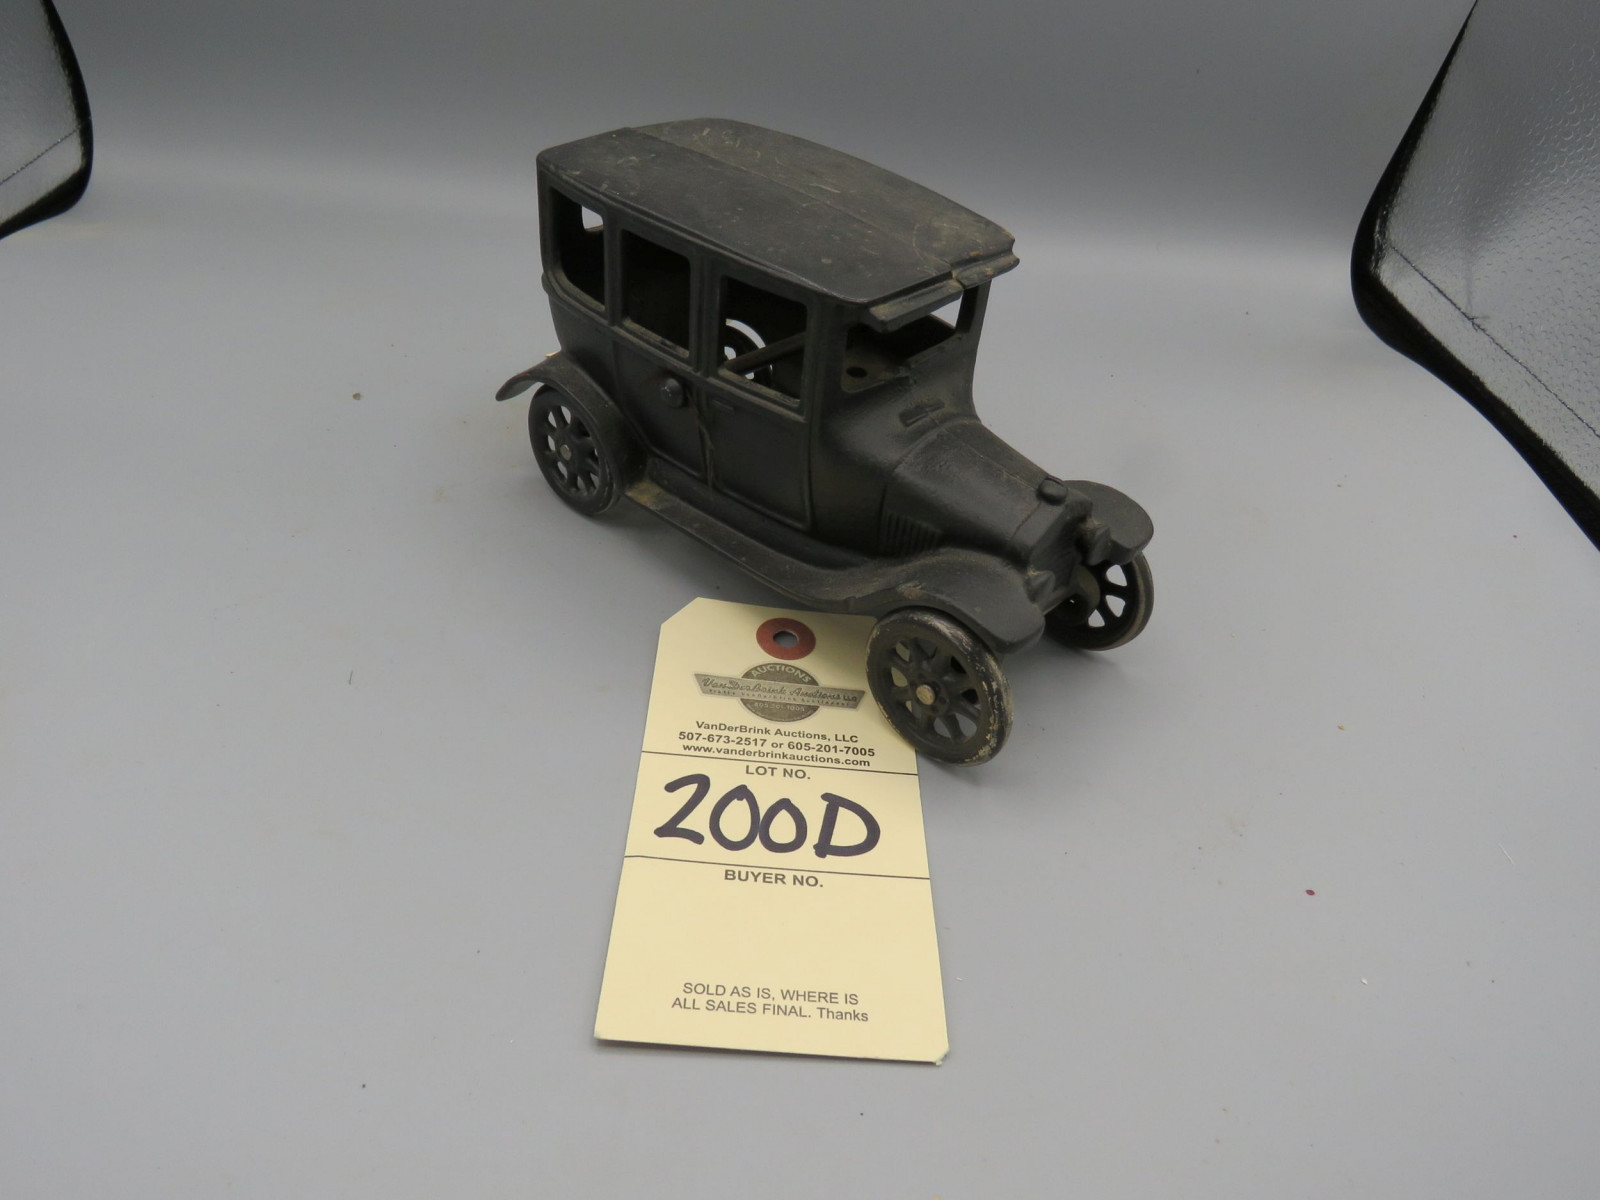 Arcade Cast Iron Ford Model T @1924 Approx. 6 inches - Image 2